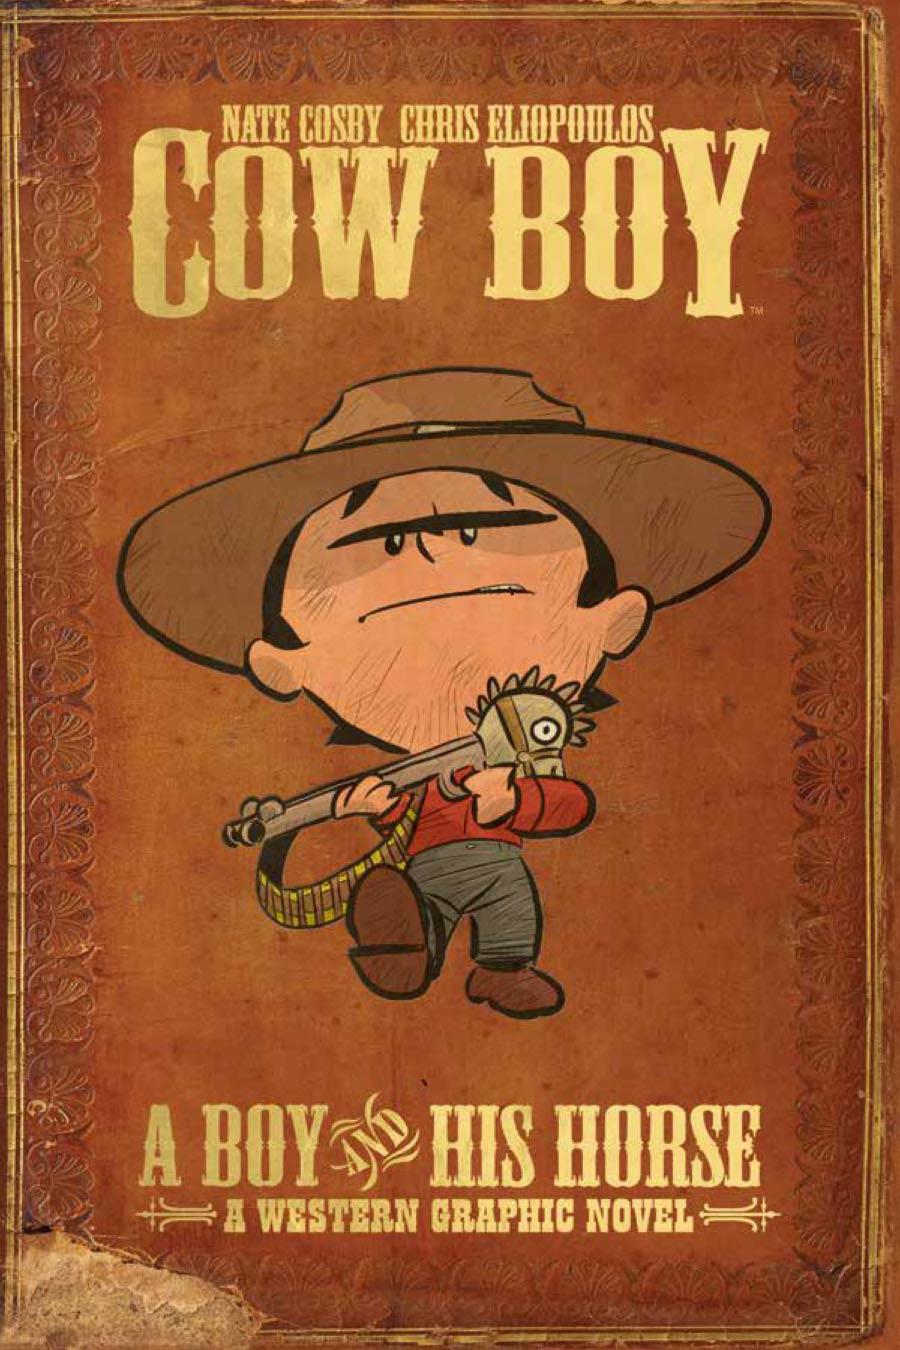 Cow Boy A Boy And His Horse TP